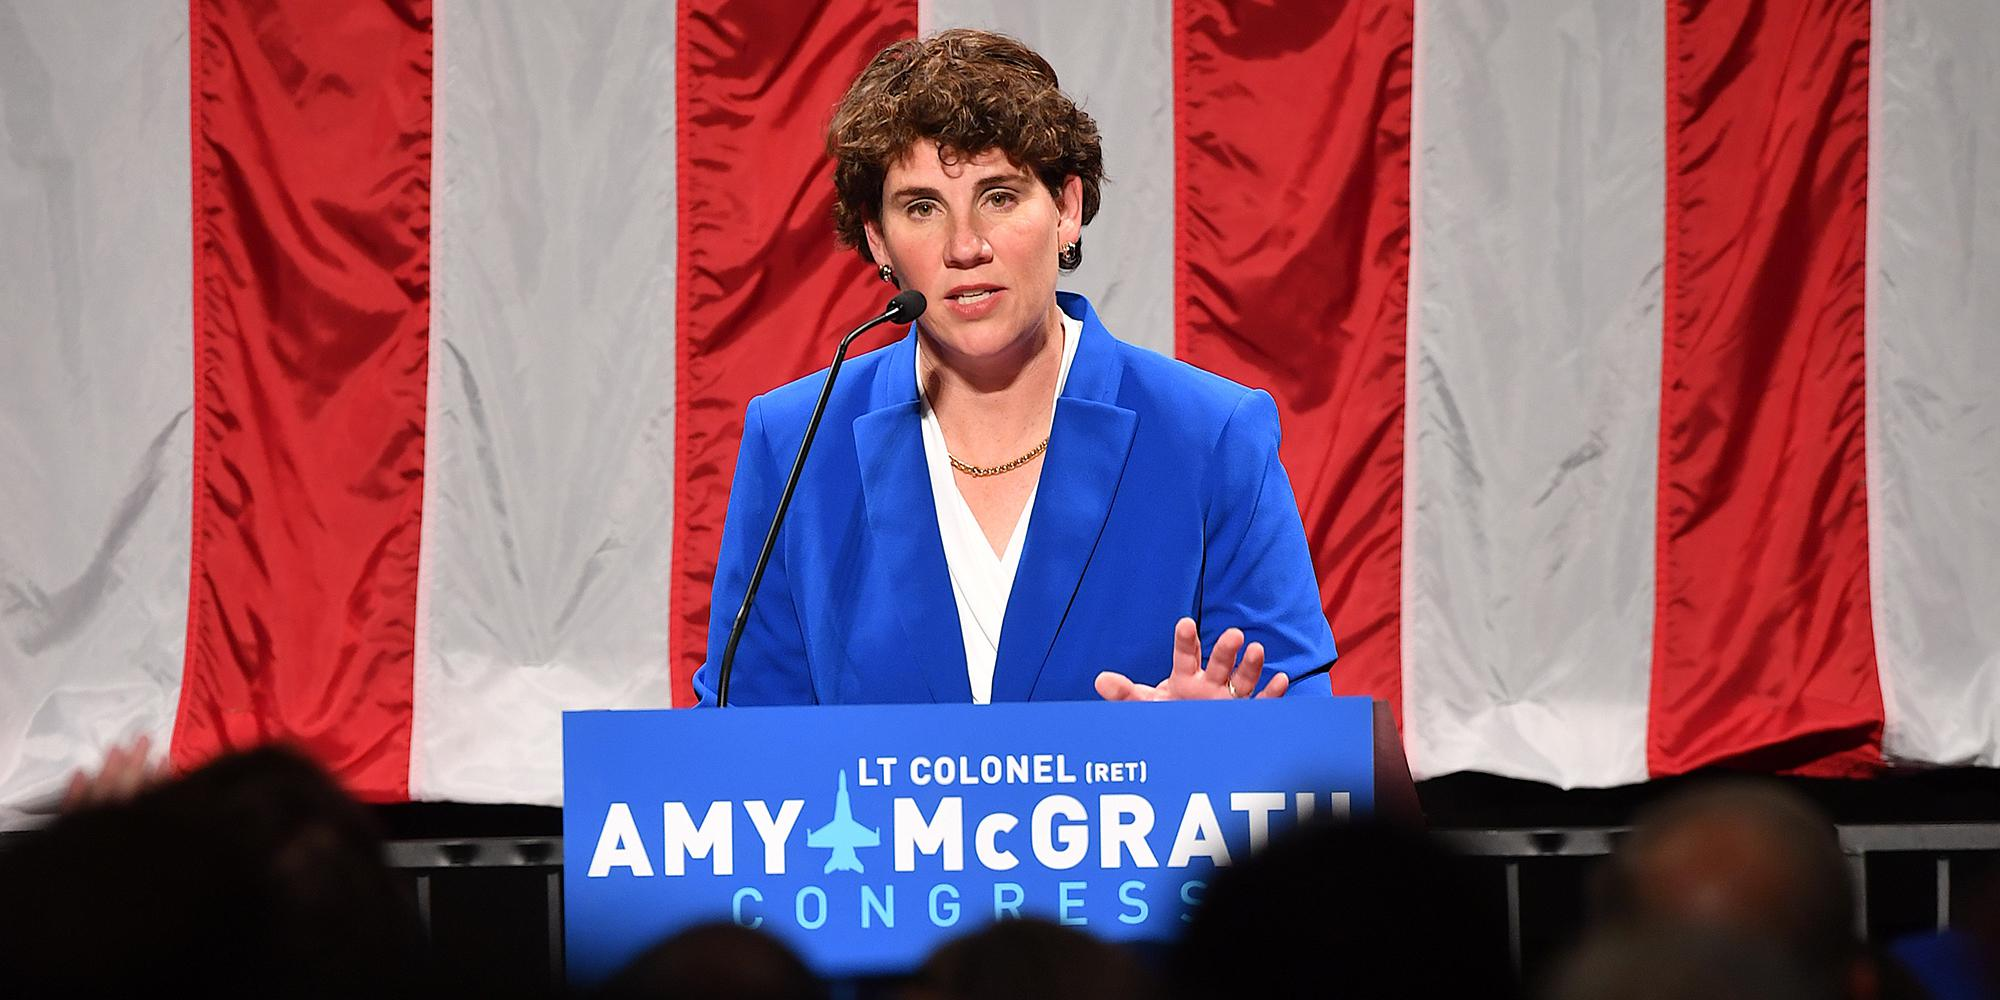 In the wake of a close 2018 election loss, former combat pilot Amy McGrath's campaign has broken fund-raising records.